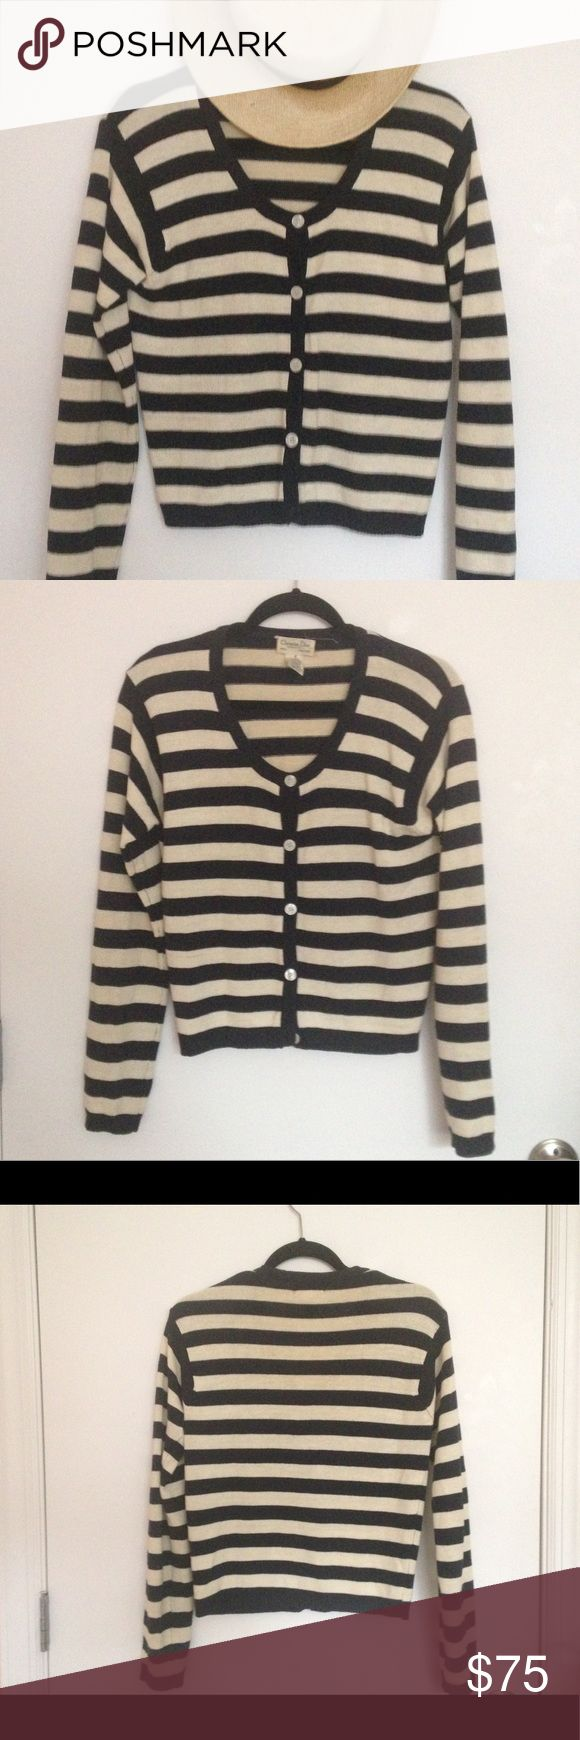 Christian Dior Striped Cardigan Vintage Dior cardigan with nautical stripes. Very good vintage condition. Christian Dior Sweaters Cardigans